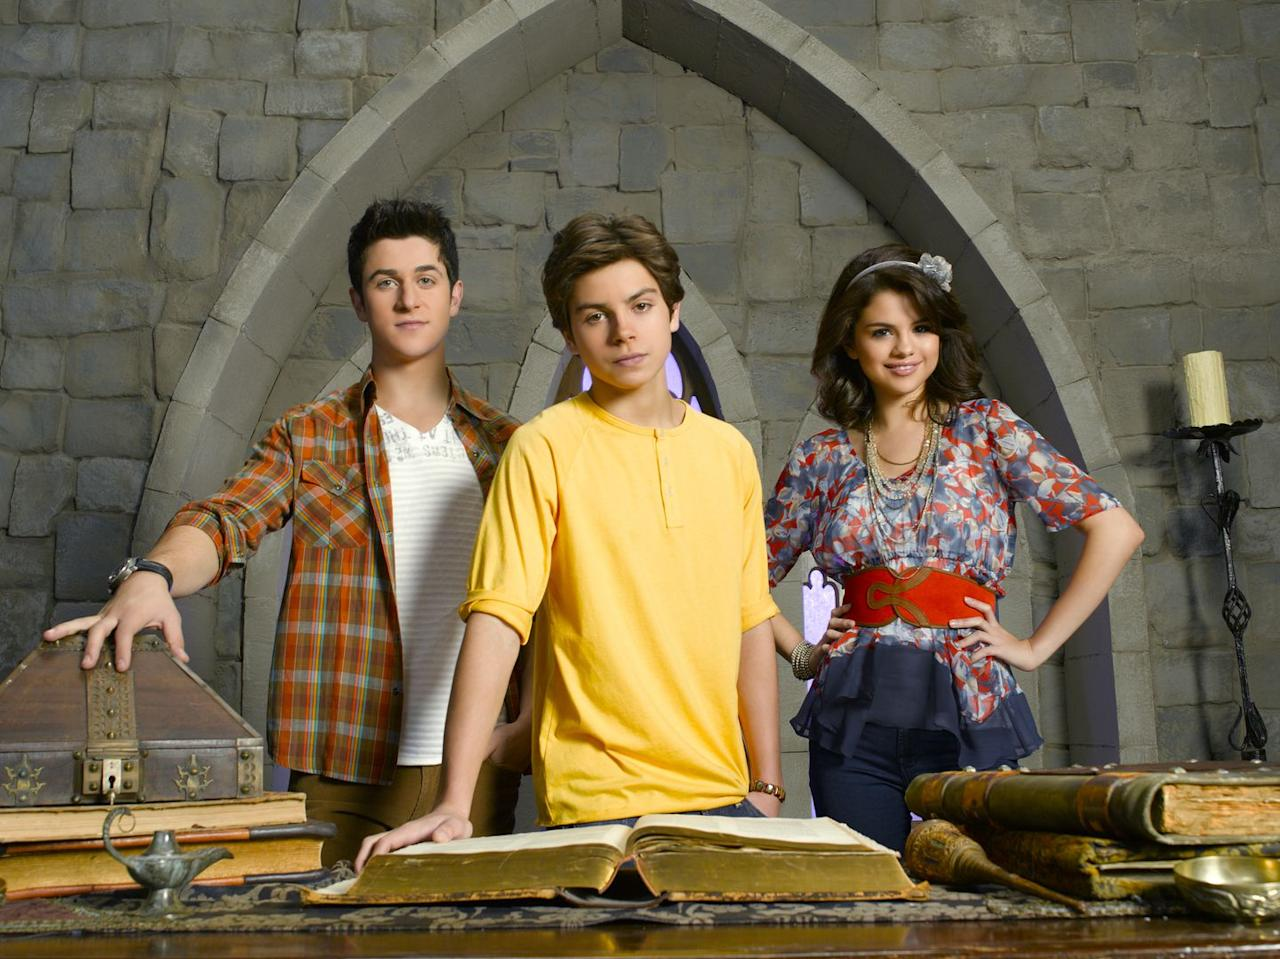 """<p>When <em>Seventeen</em> <a href=""""https://www.seventeen.com/celebrity/movies-tv/a12780058/wizards-of-waverly-place-tenth-anniversary-todd-j-greenwald-interview/"""" target=""""_blank"""">spoke to series creator Todd J. Greenwald in 2017</a> for the show's 10th anniversary, we learned two characters from the unaired pilot were ultimately scrapped from the series before airing.</p><p>Justin Russo (David Henrie) had a best friend, played by <em>Sonny with a Chance</em> star Brandon Mychal Smith. There was also a character named Rachel - named after Todd's wife - who was played by <em>Jonas</em> star Chelsea Kane (aka Chelsea Staub).</p><p>While Brandon would not appear on the show in another capacity, Chelsea went on to play Kari Langsdorf on the <a href=""""https://www.imdb.com/title/tt1081895/"""" target=""""_blank"""">baseball episode</a>.</p><p><a href=""""https://www.seventeen.com/celebrity/movies-tv/a12780058/wizards-of-waverly-place-tenth-anniversary-todd-j-greenwald-interview/"""" target=""""_blank""""><strong>MORE:</strong> Everything You Wanted to Know About <em>Wizards of Waverly Place</em></a><em></em></p>"""